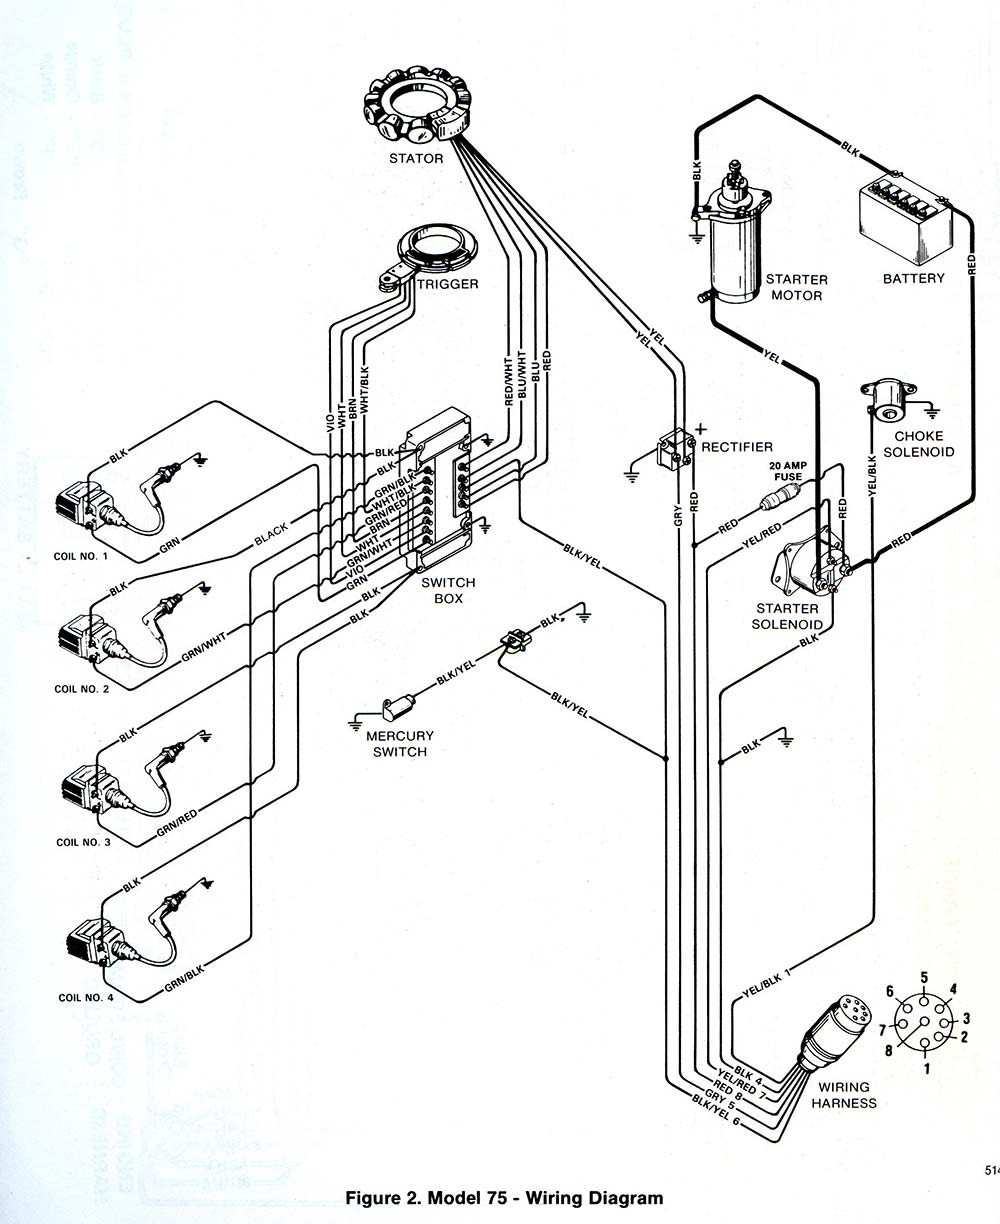 Quicksilver Gauge Wiring Diagram Schematic Diagrams Pietenpol Mercury Outboard Mastertech Marin